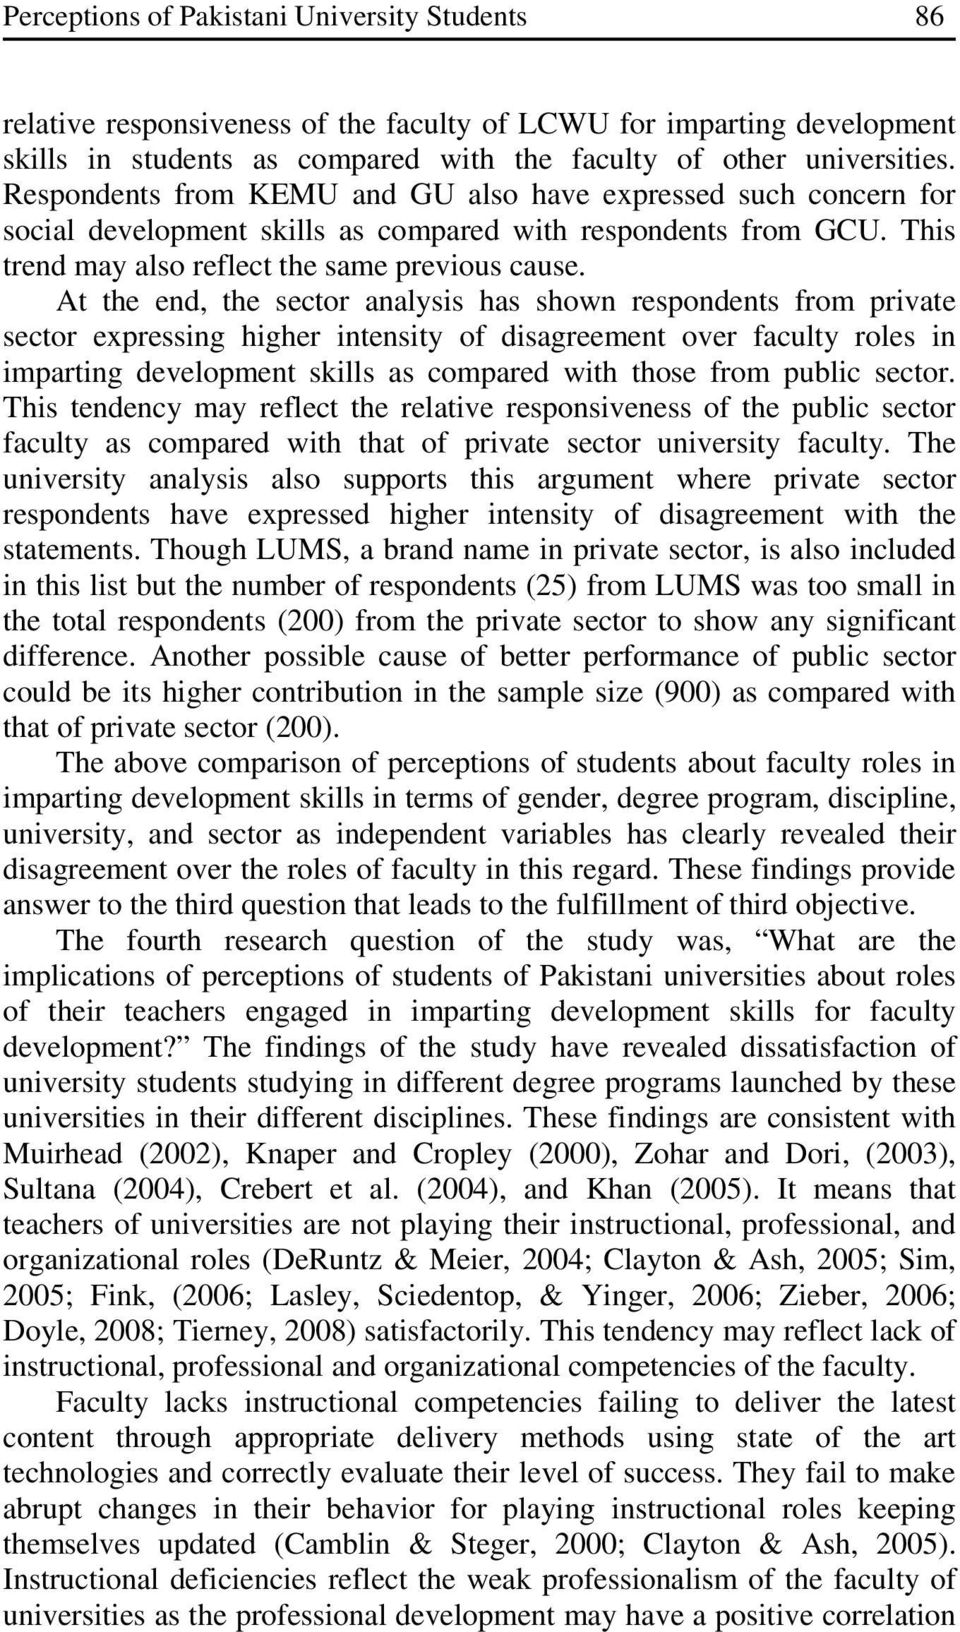 At the end, the sector analysis has shown respondents from private sector expressing higher intensity of disagreement over faculty roles in imparting development skills as compared with those from